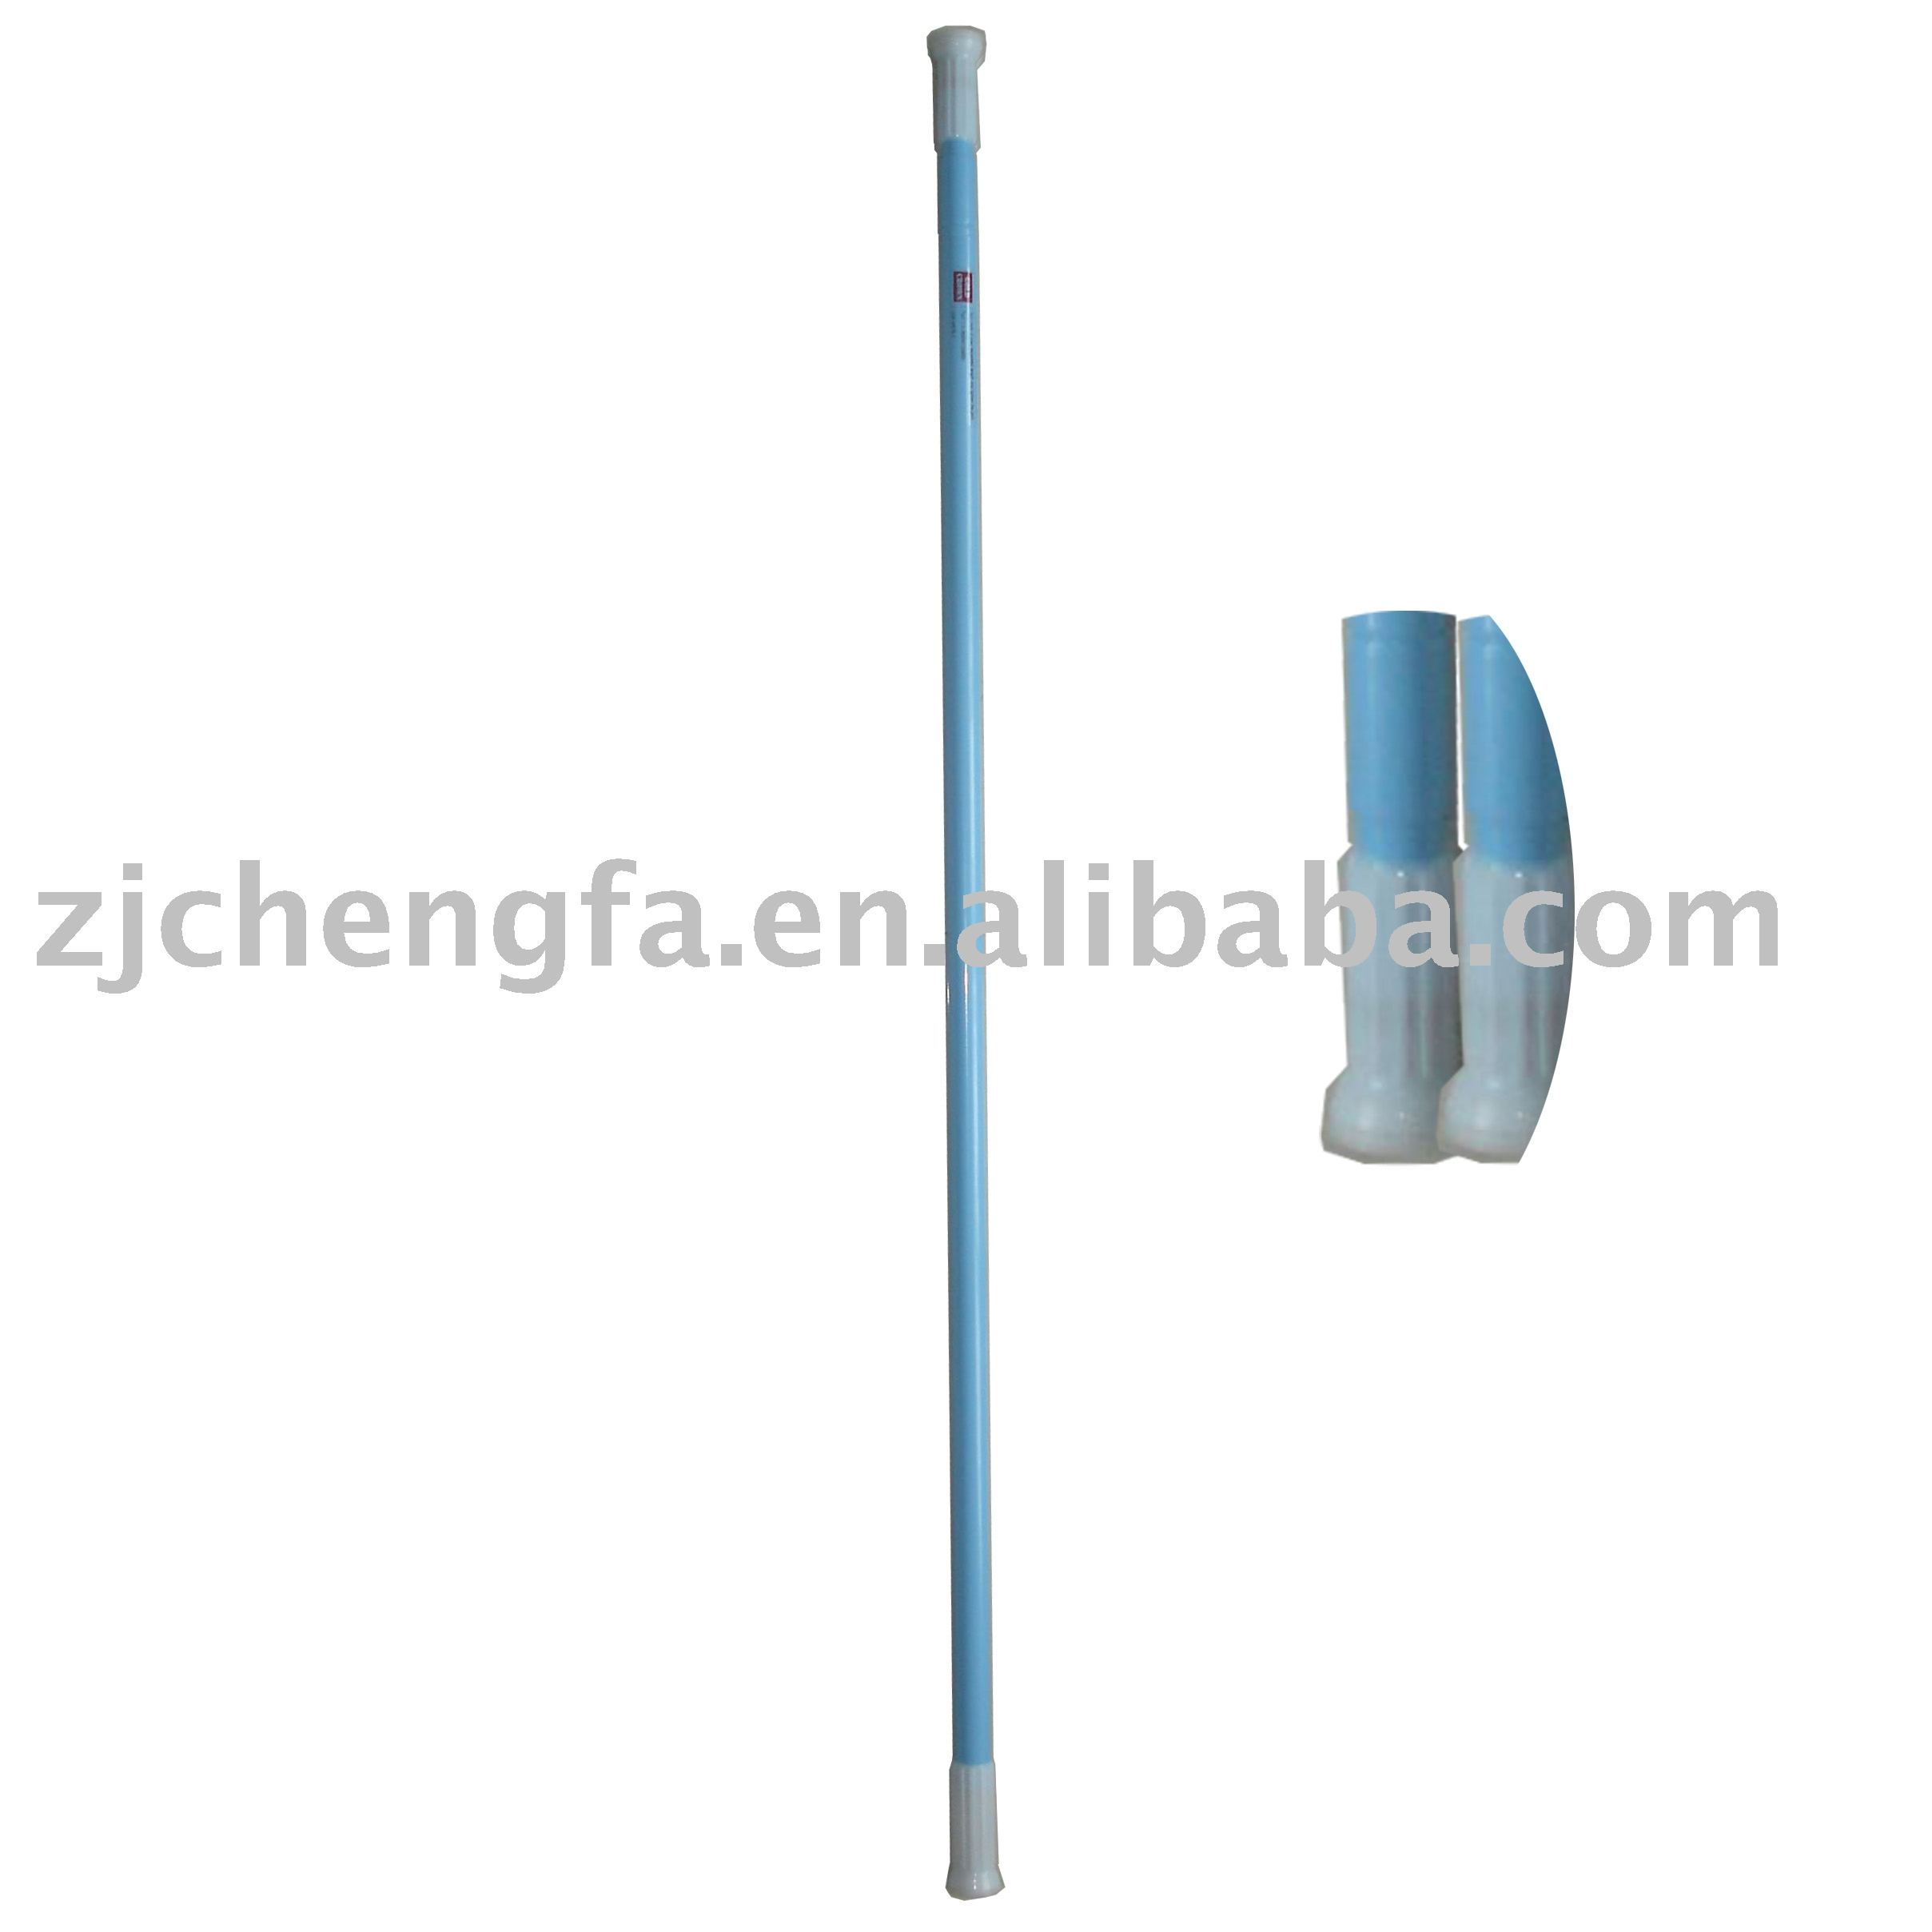 Spring Tension Rod, Spring Tension Rod Suppliers and Manufacturers ...